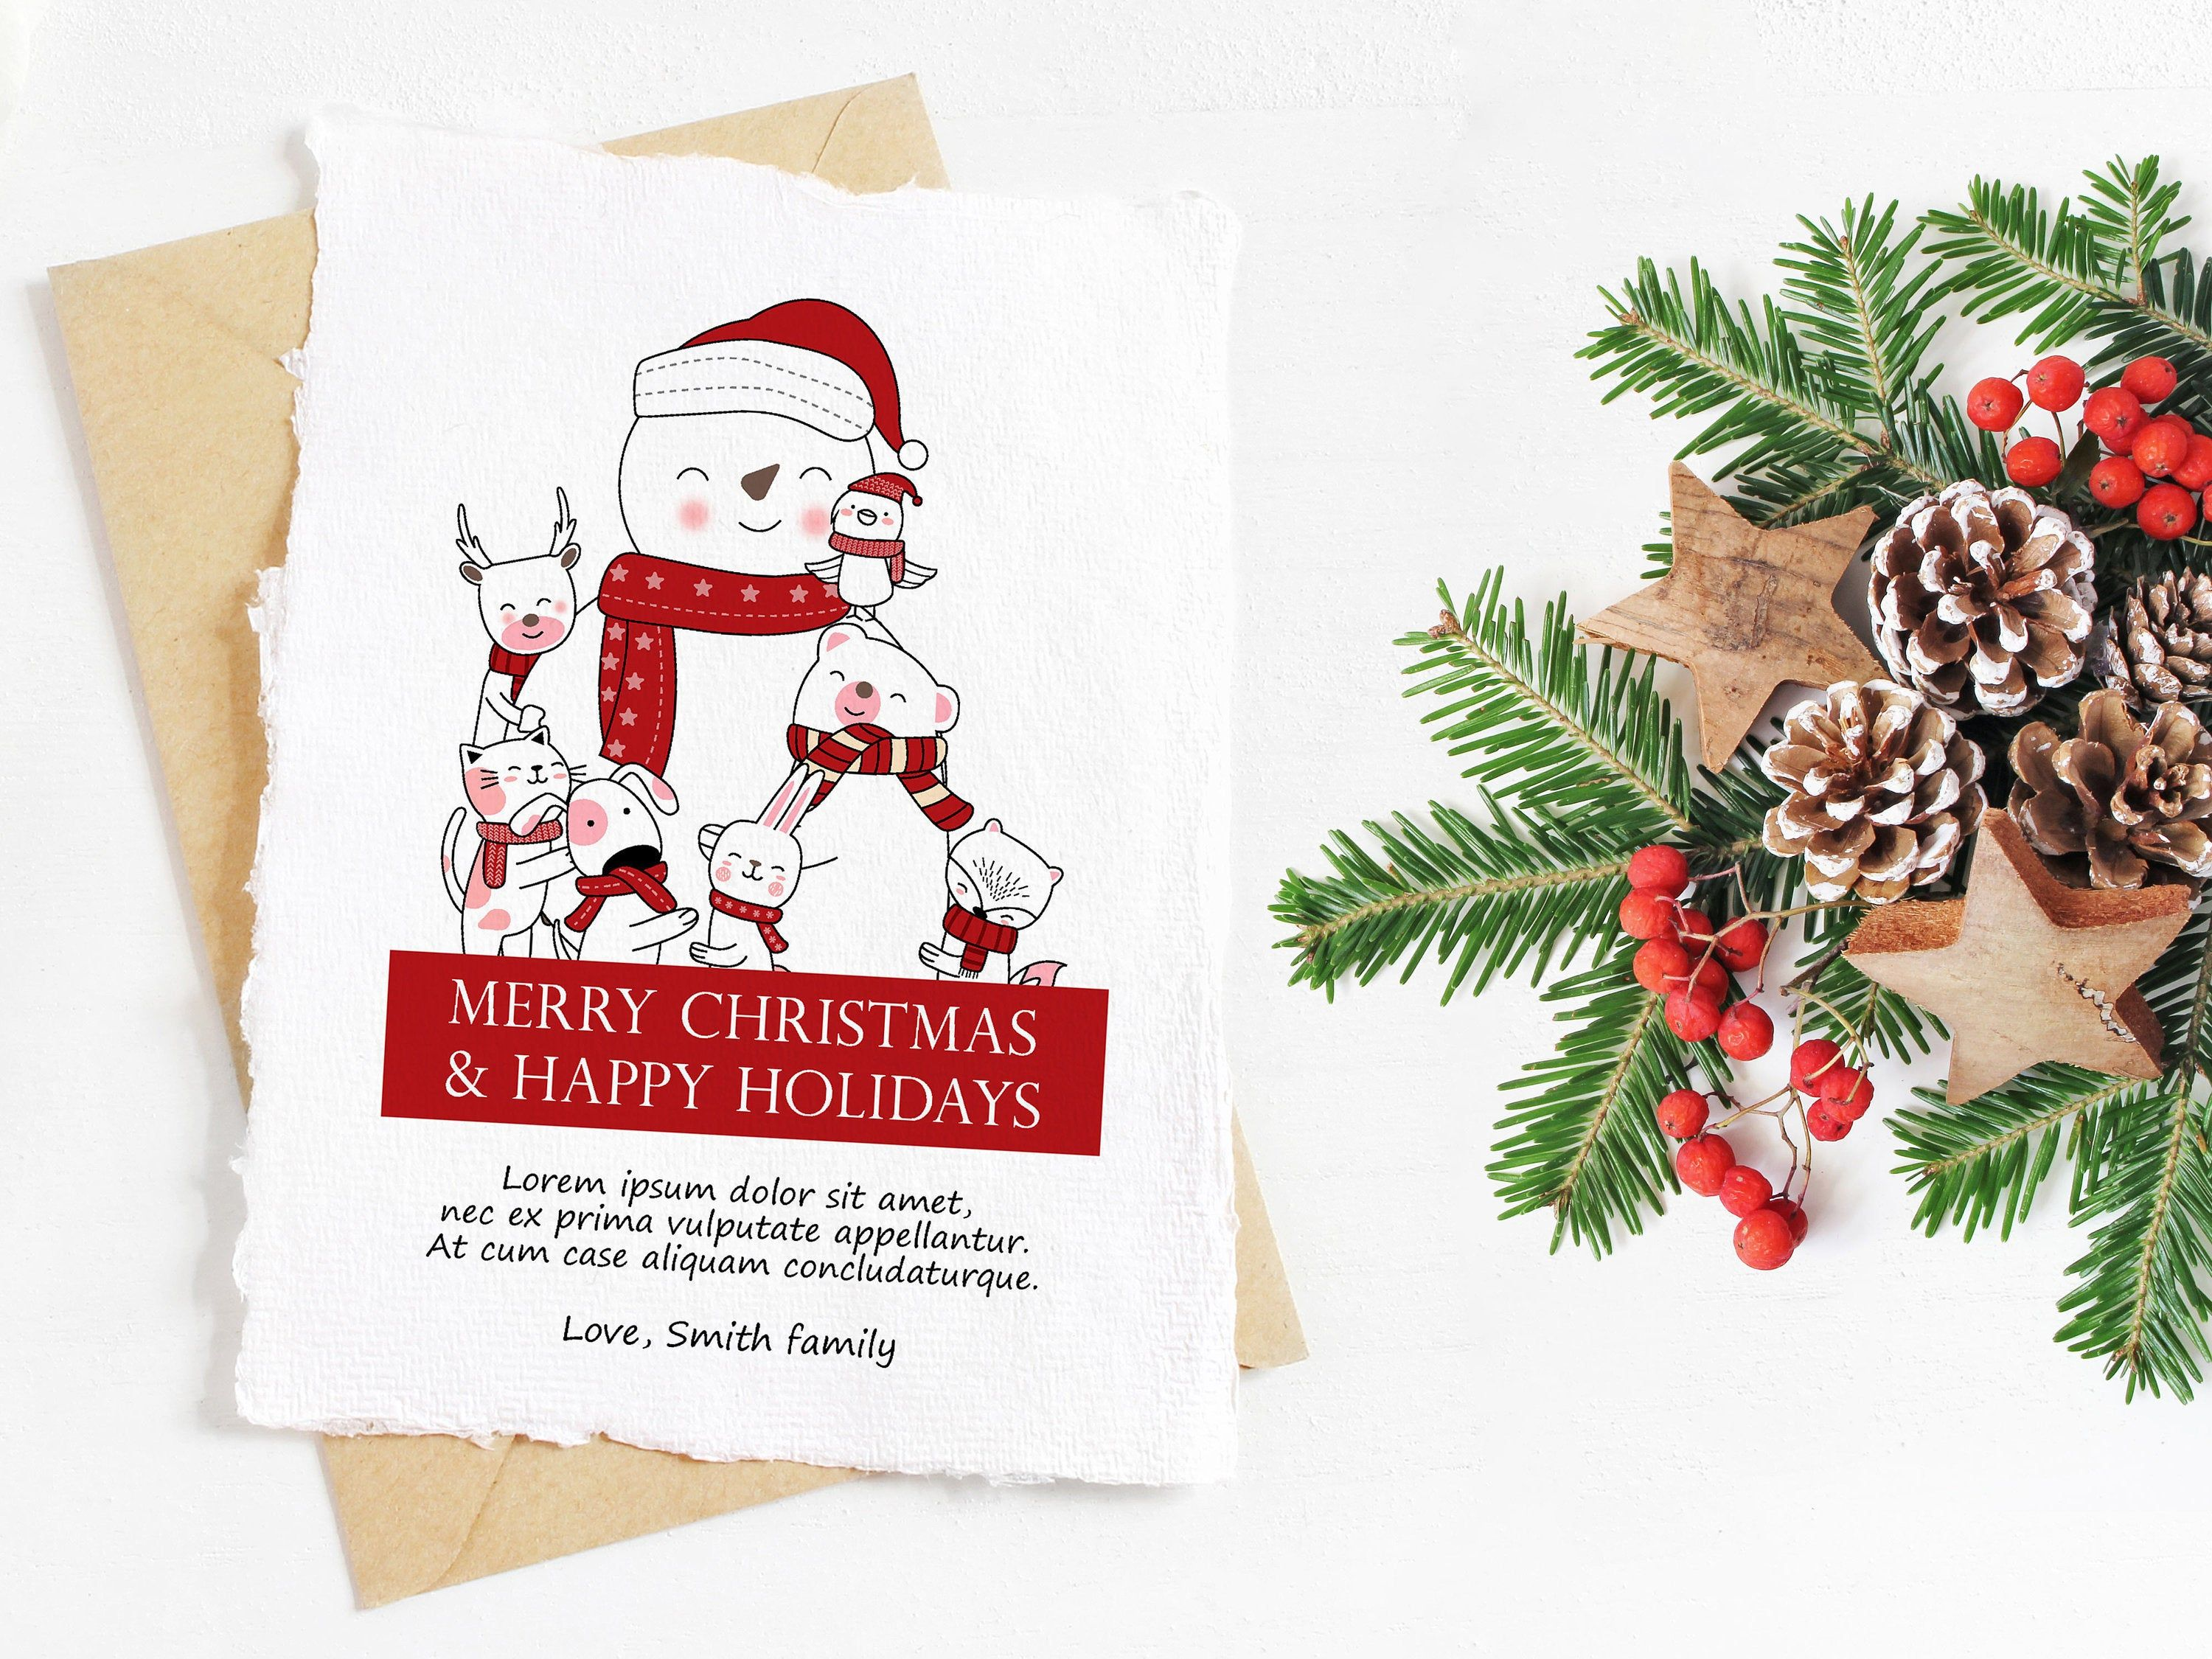 Pin By Mariya On Love In 2020 Christmas Card Template Christmas Templates Christmas Greetings